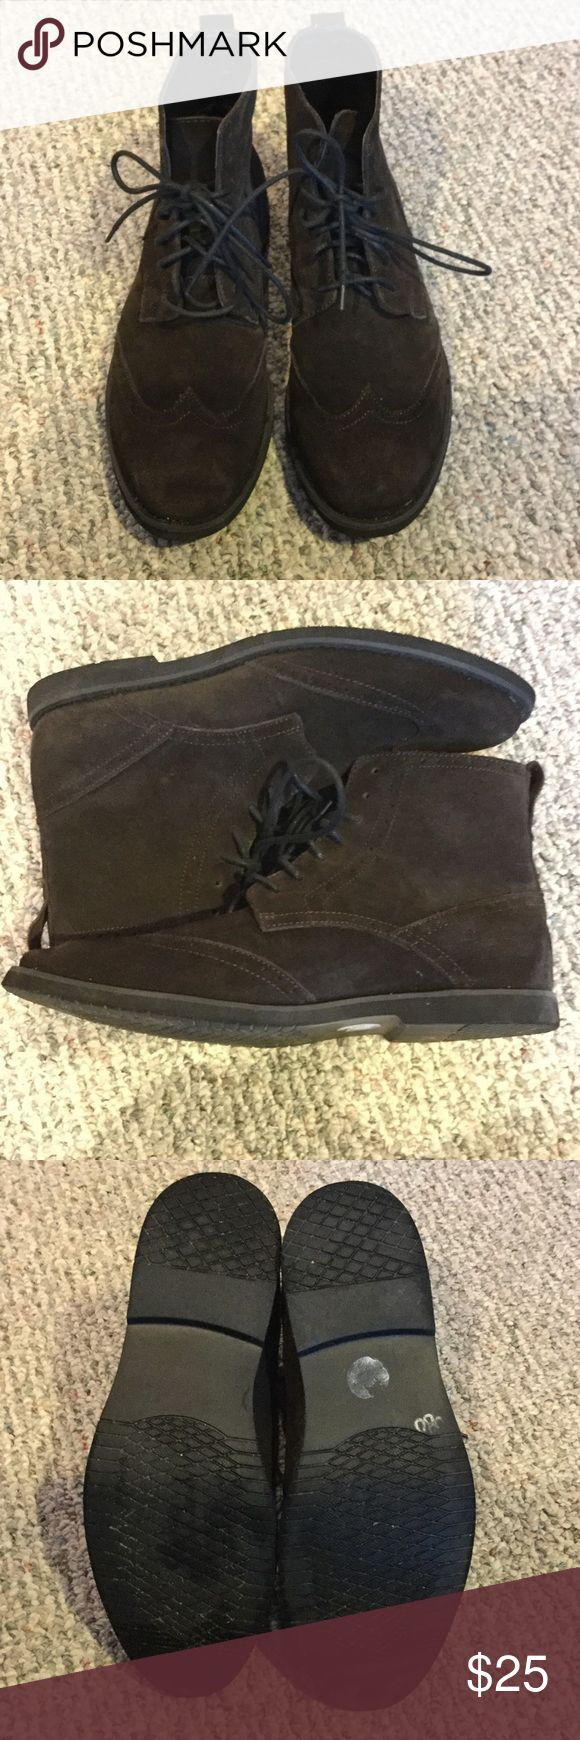 Calvin Klein men's chukka boots! Gently worn Calvin Klein brown chukka boots.  Still in great condition! Calvin Klein Shoes Chukka Boots